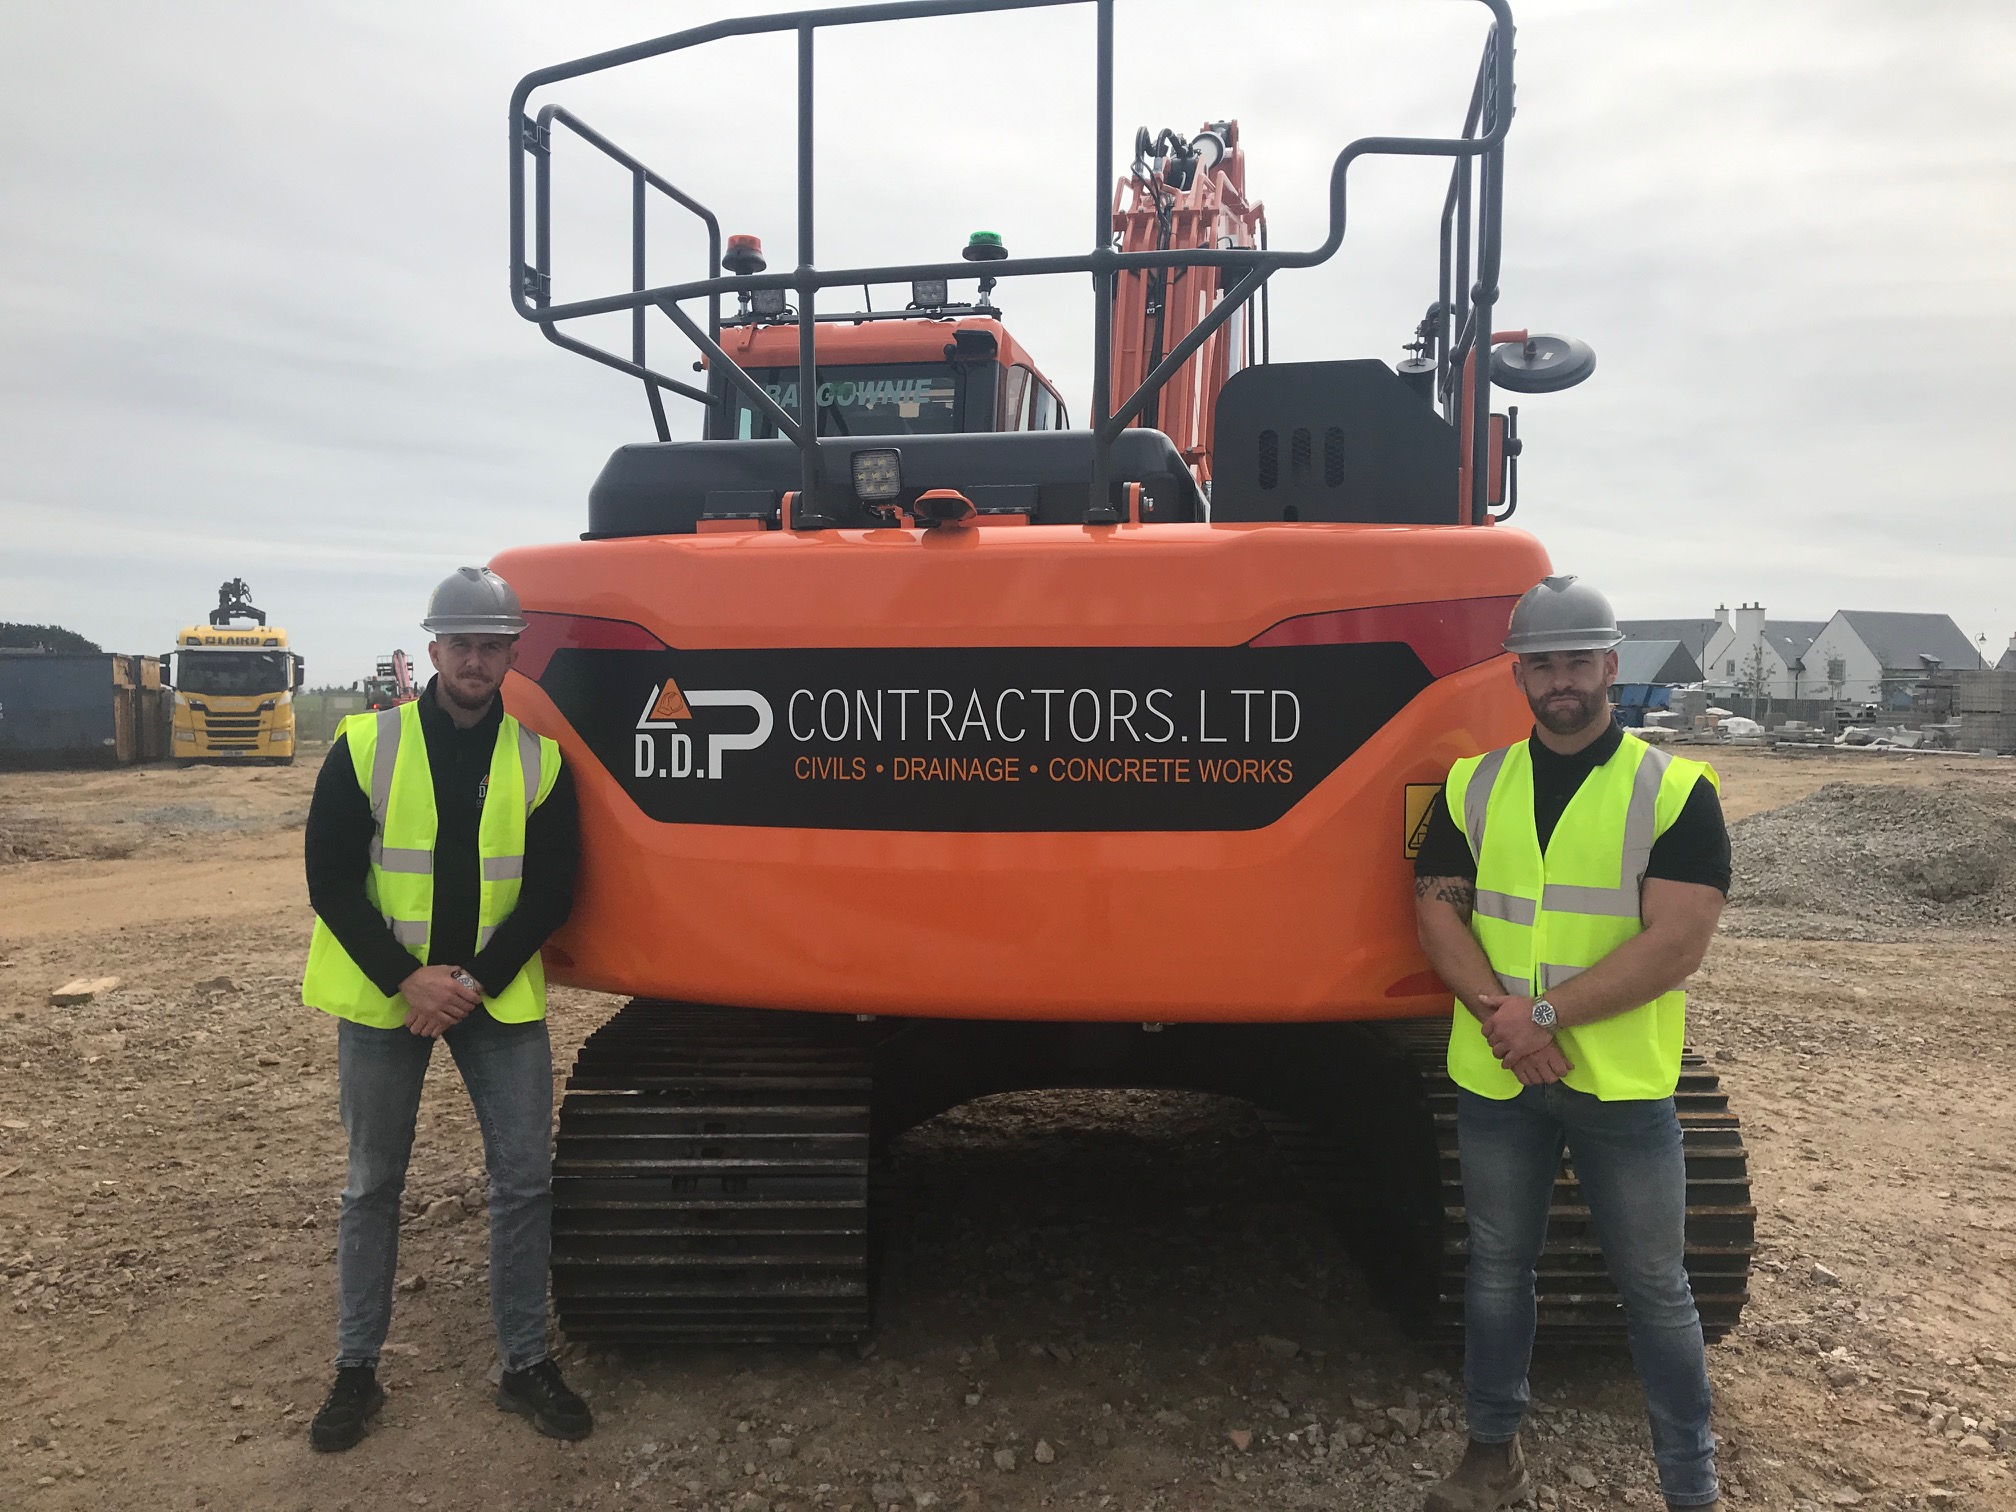 Scottish Contractor Prospers with New Doosan Excavator